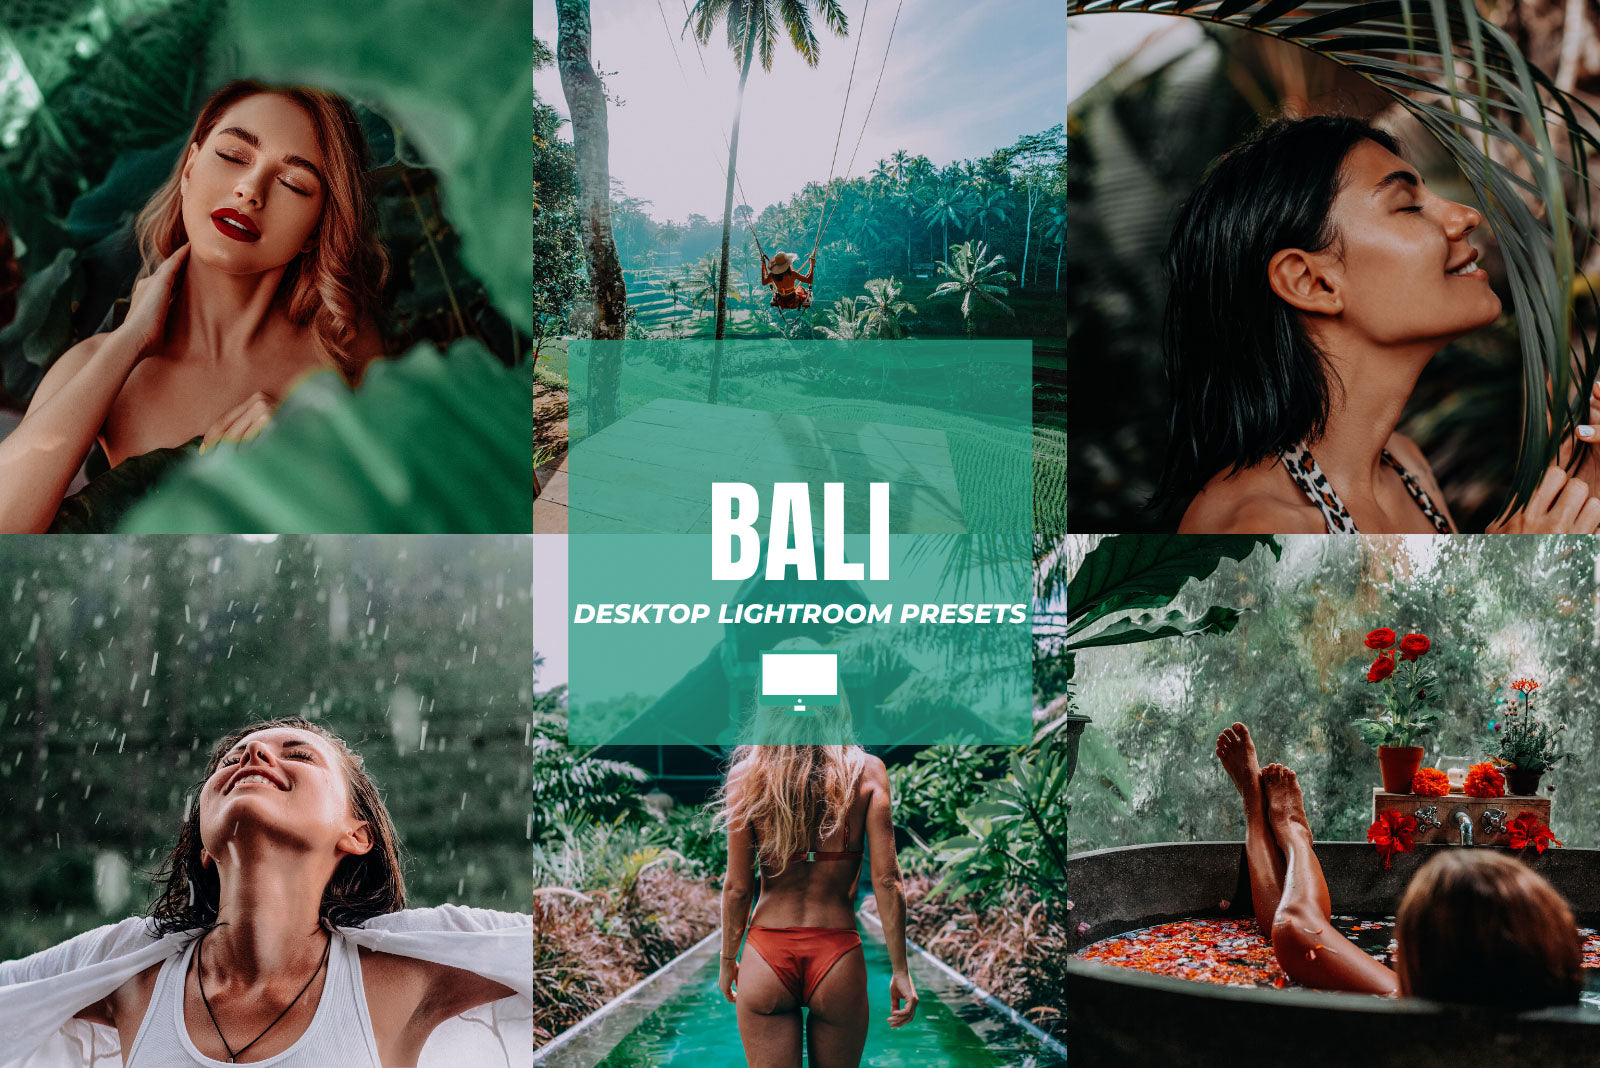 BALI DESKTOP LIGHTROOM PRESETS by The Viral Presets